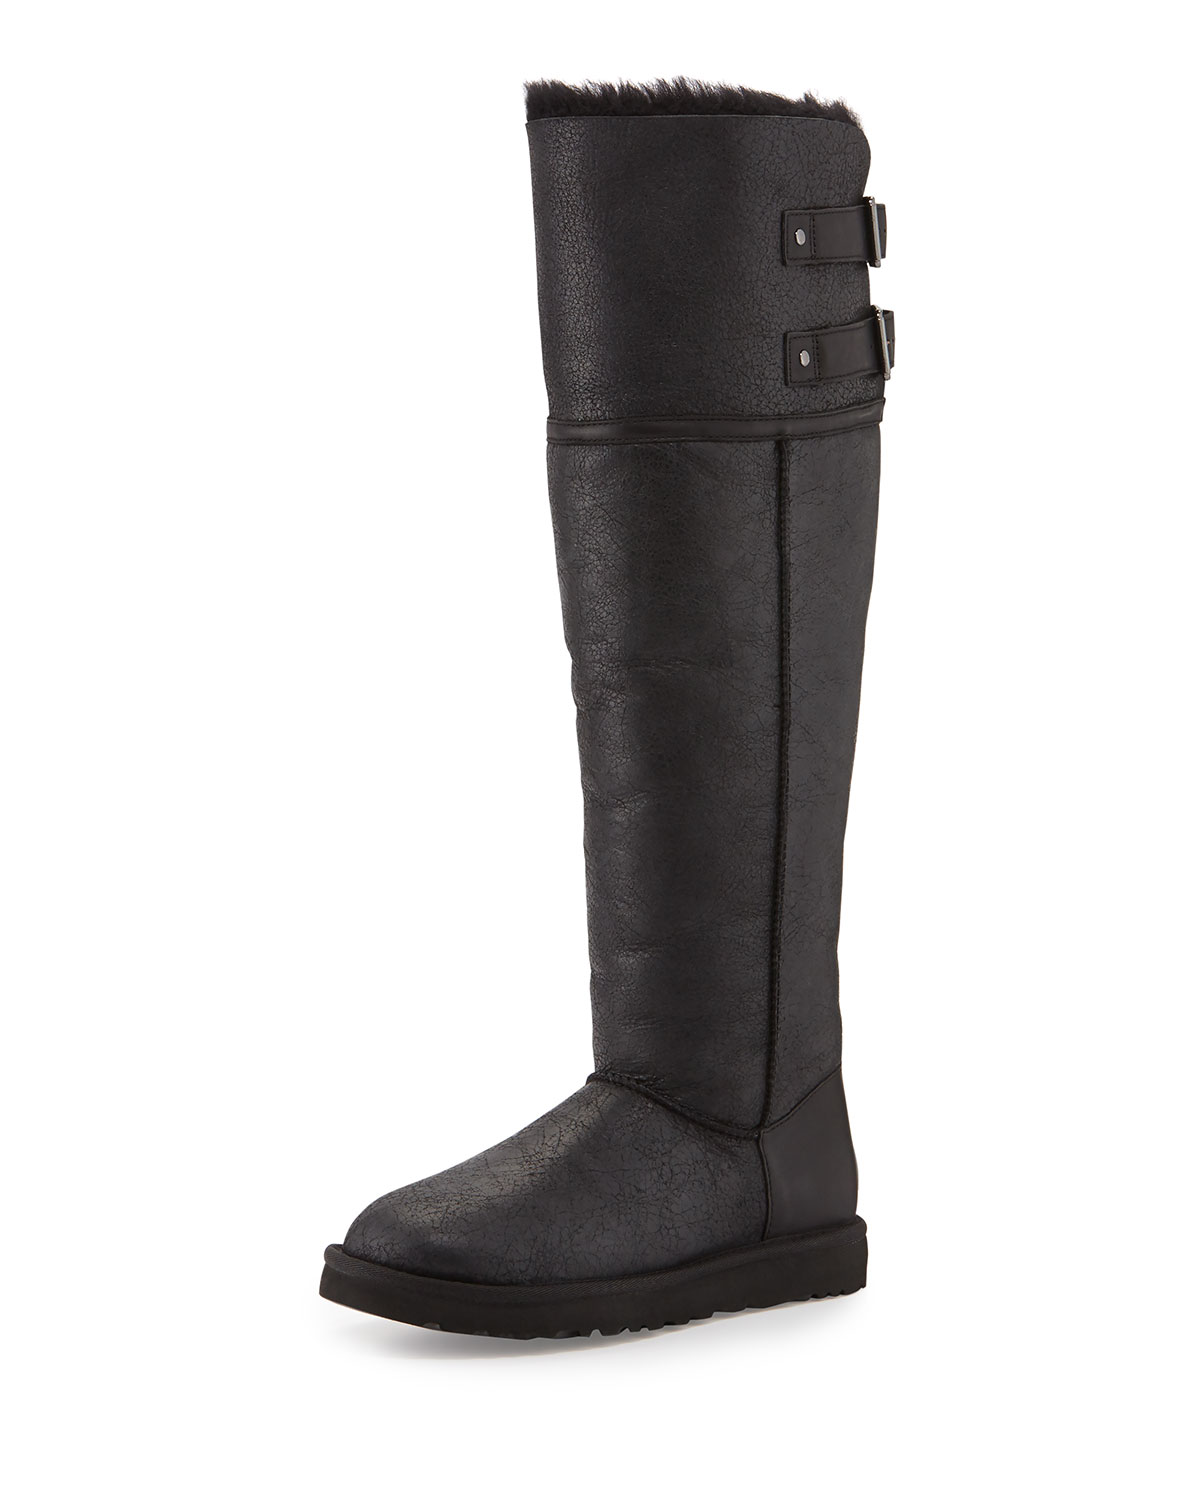 UGG Australia Shearling-Trimmed Knee-High Boots quality free shipping outlet BIX5j6NoI